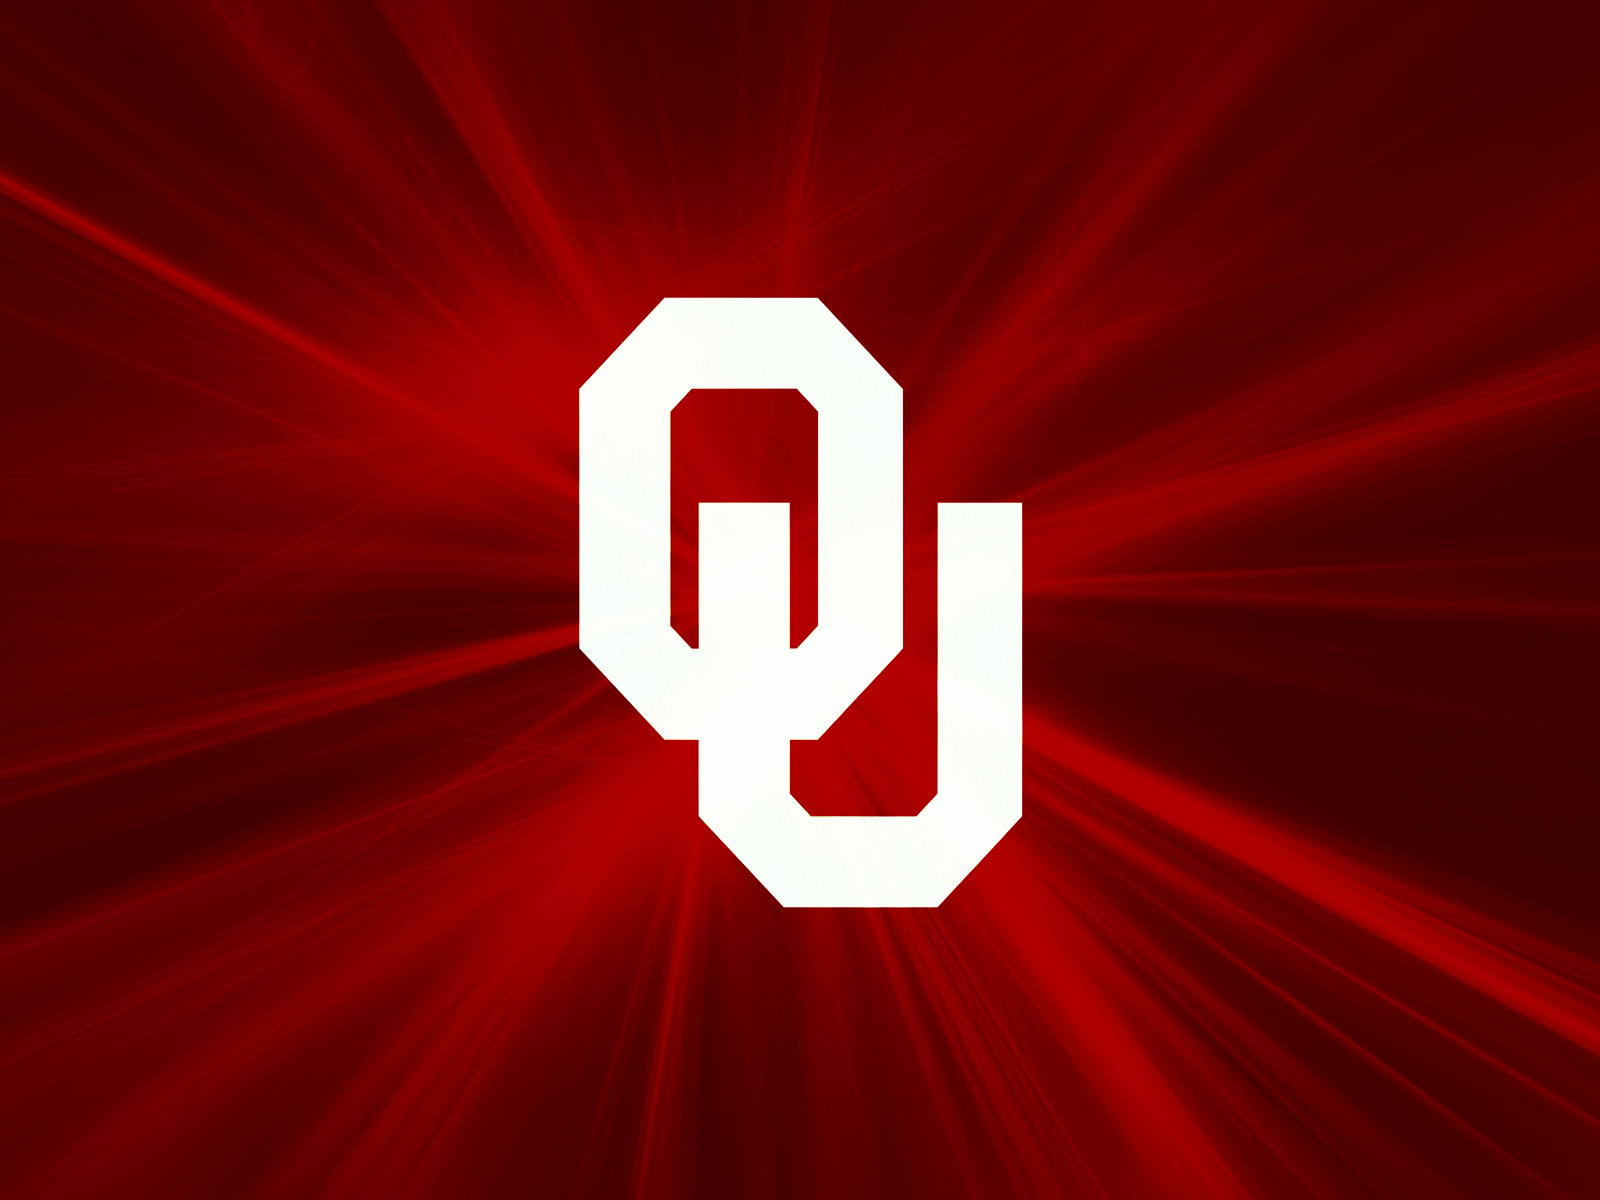 oklahoma sooners by tabby46 fan art wallpaper other 2012 2015 tabby46 1600x1200